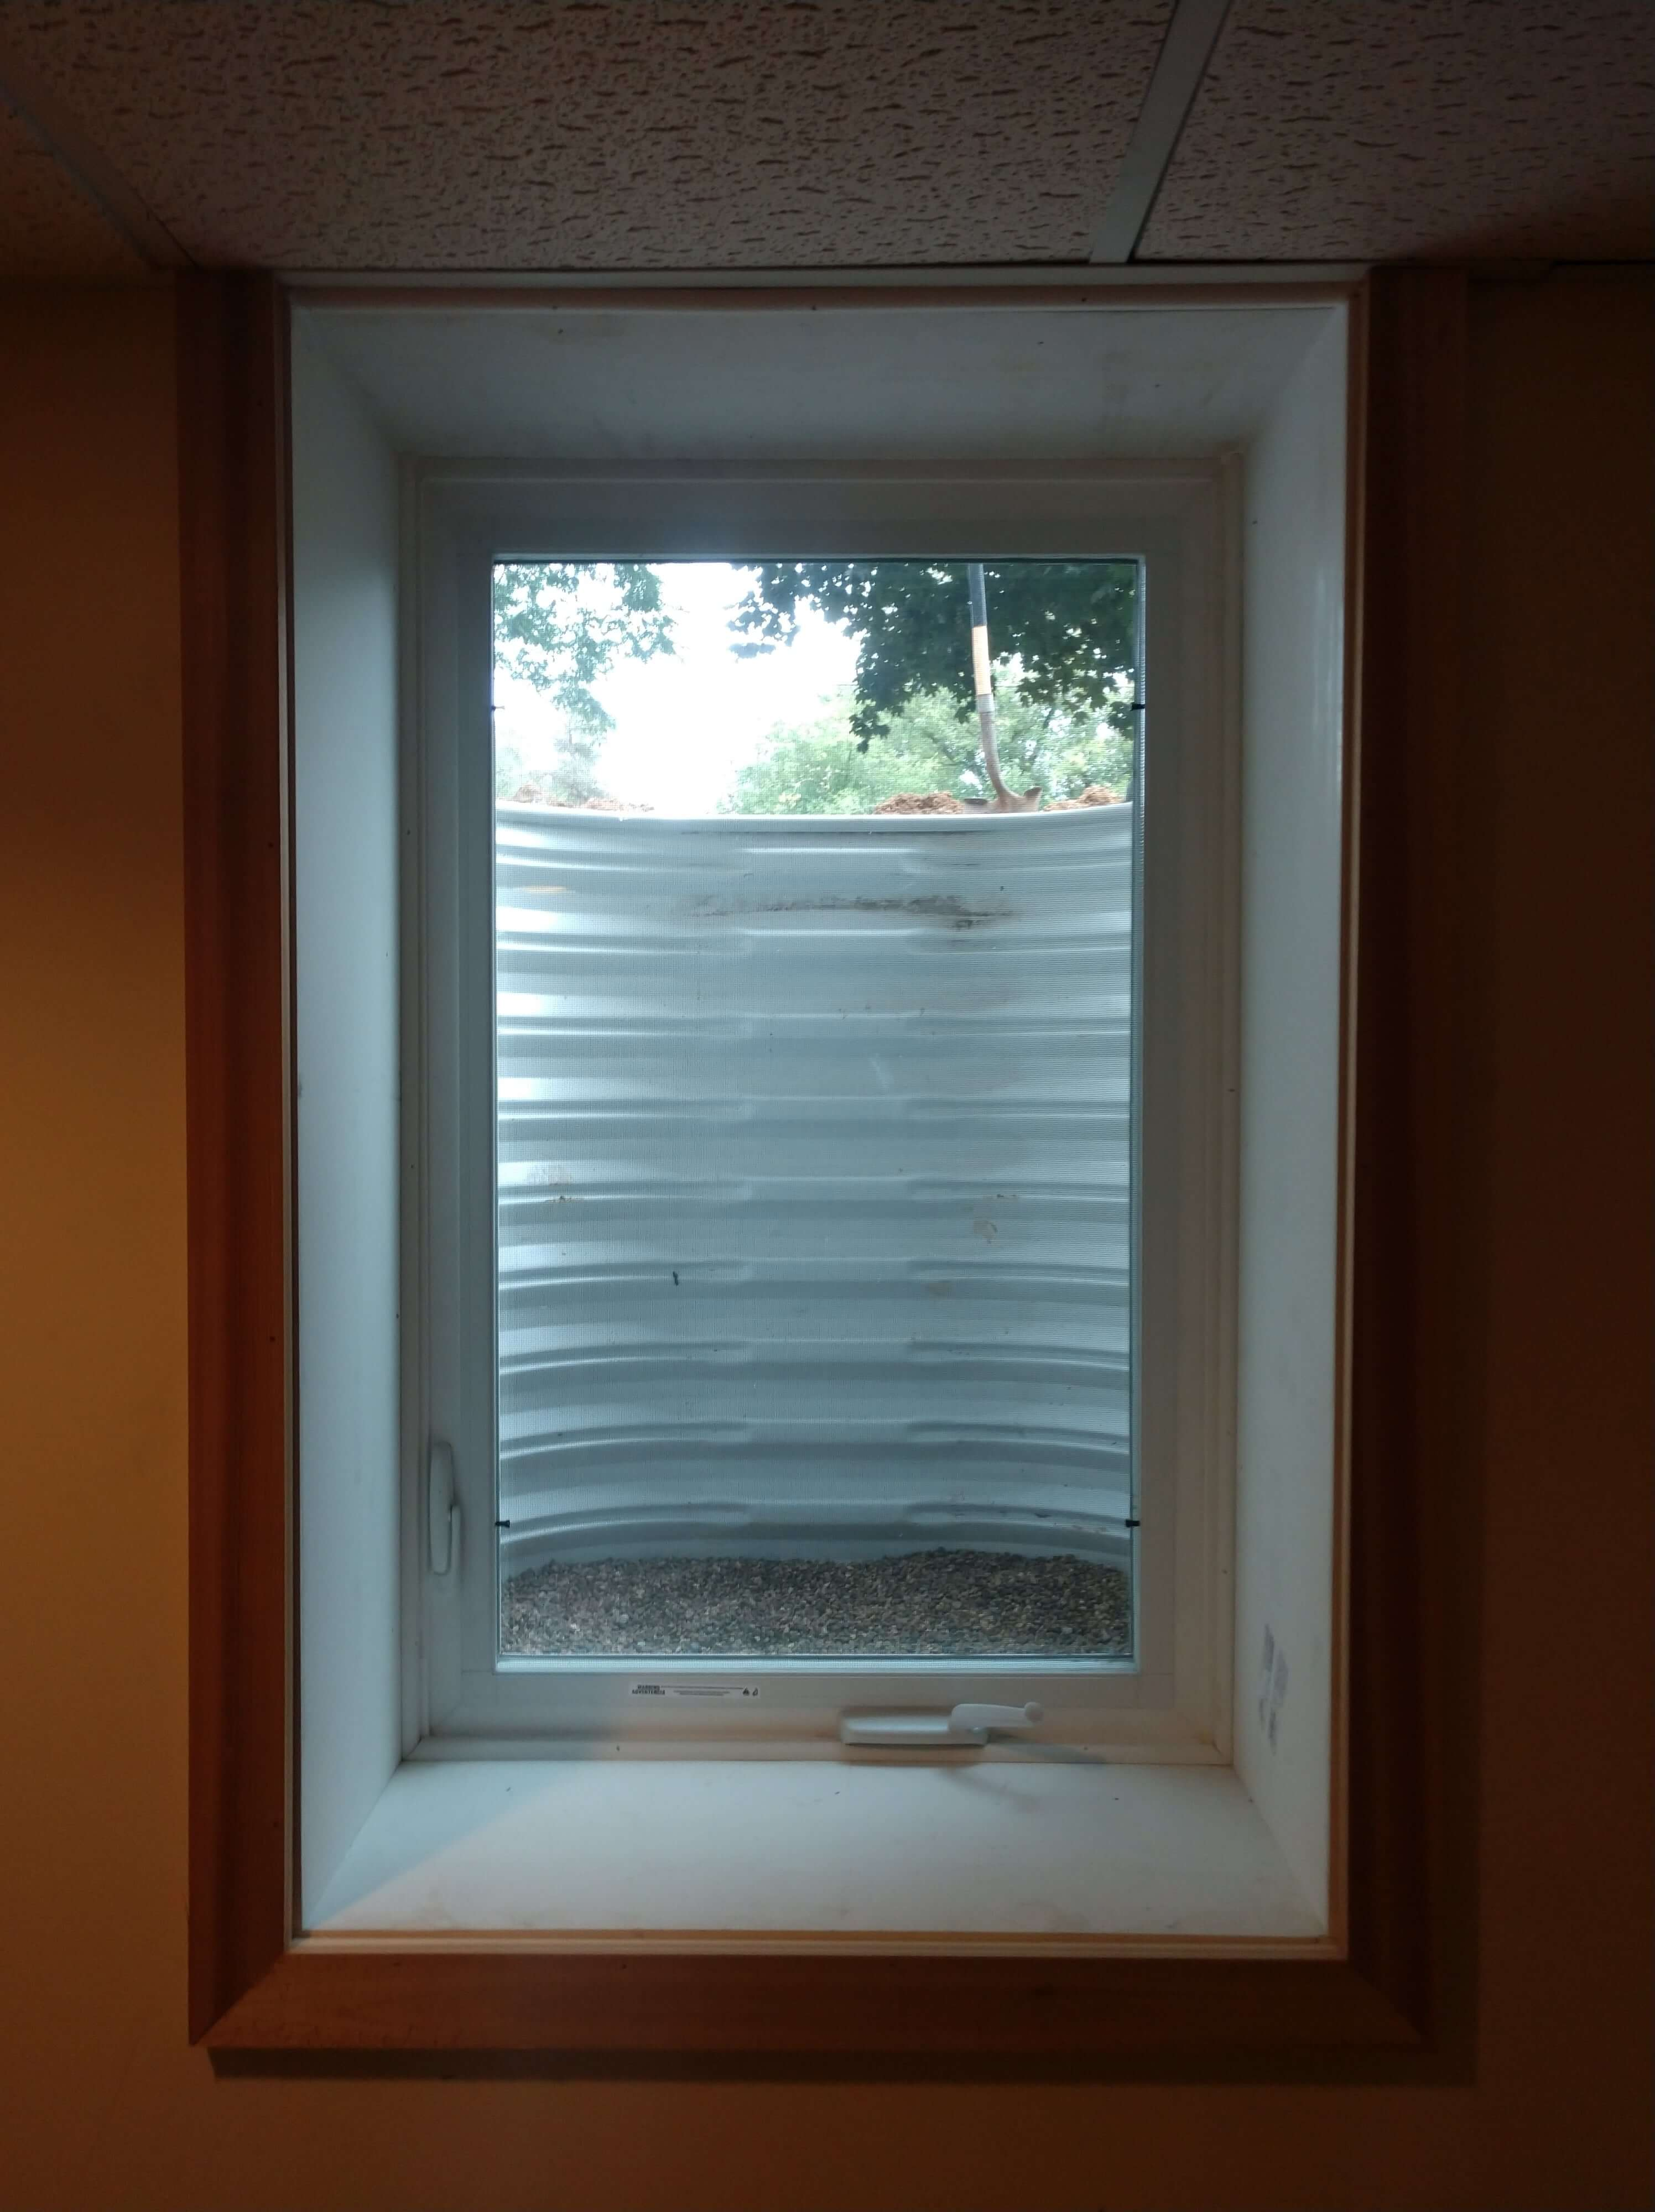 window viewed from the interior